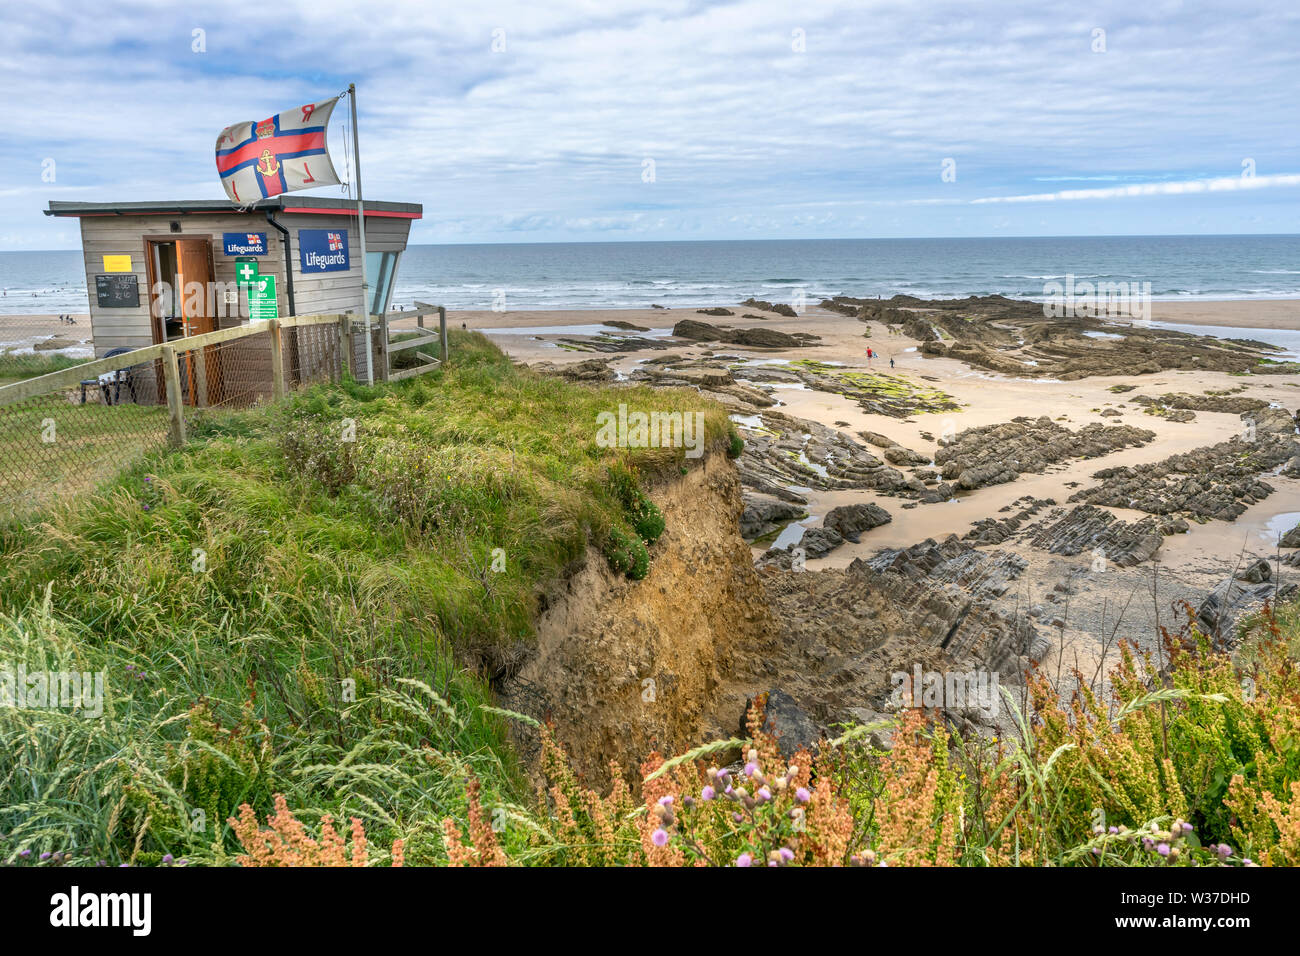 Bude Beach, North Cornwall, England. Saturday 13th July 2019. UK Weather. Lower temperatures, overcast skies and a cooling breeze on the North Cornish coast as Bude still welcomes holidaymakers to the popular coastal resort in North Cornwall. Stock Photo